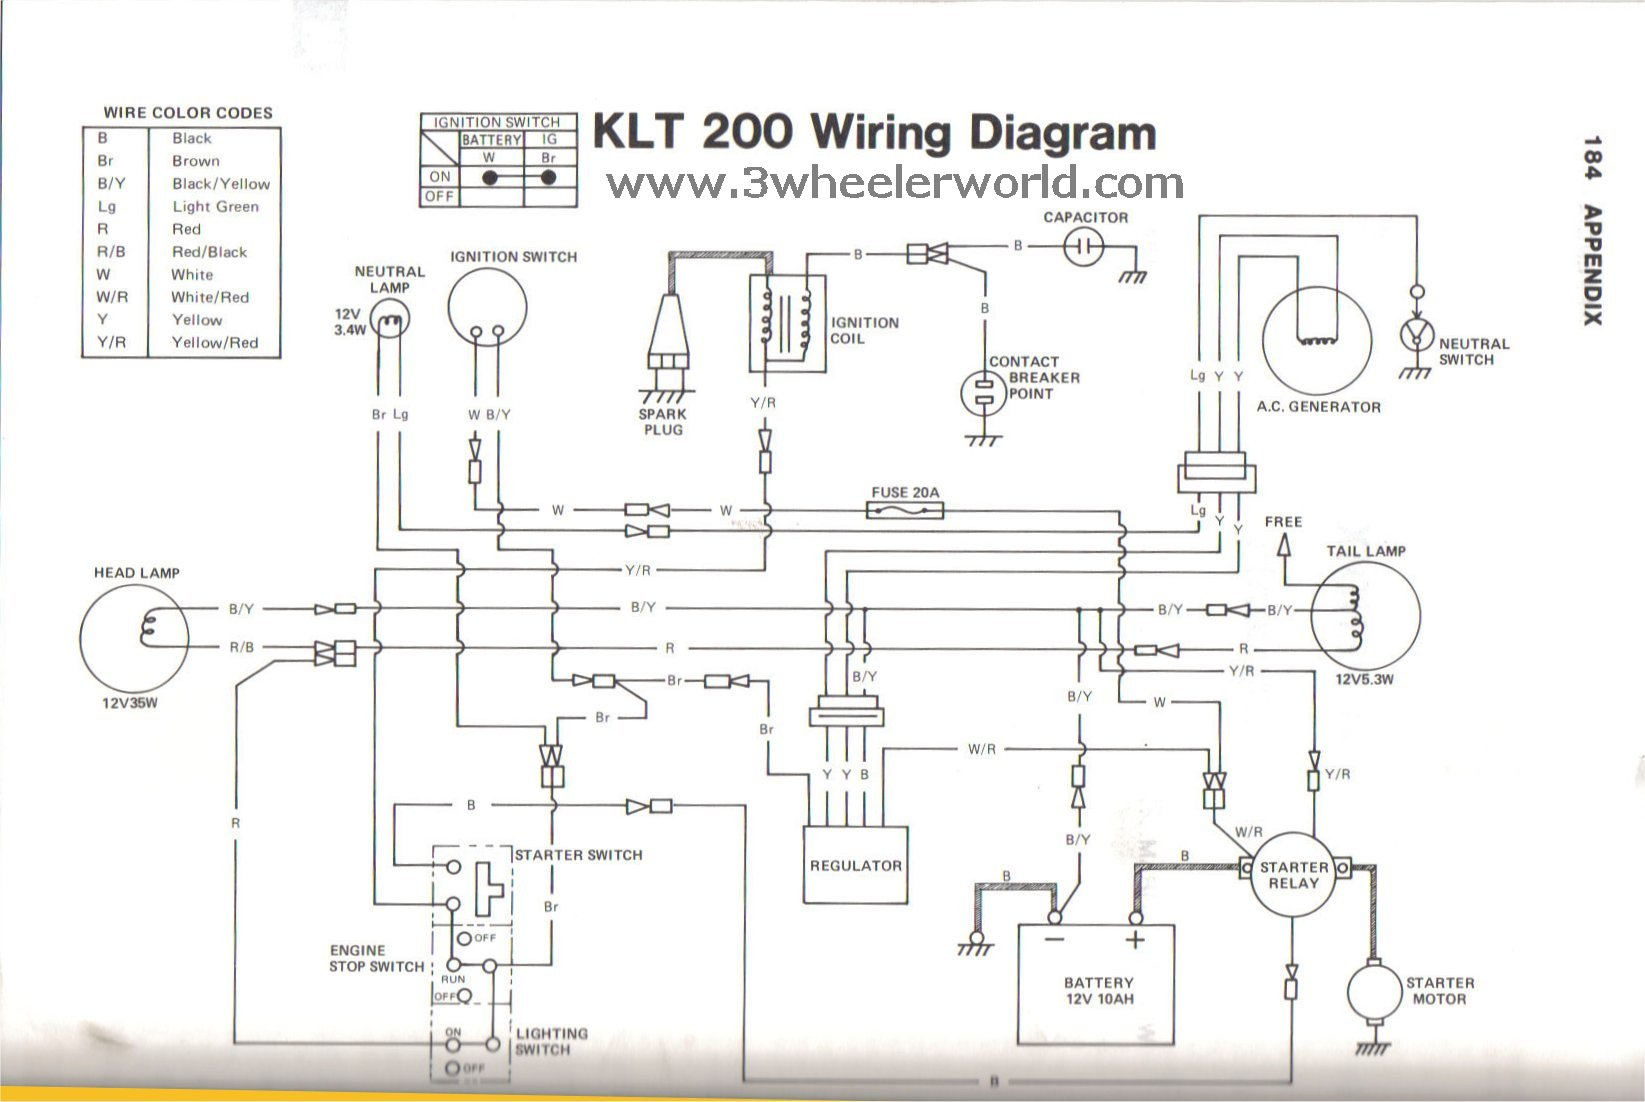 Motorcycle Wiring Diagram Engine Harness Ford To Pioneer Honda 200 Free Diagrams Electrical